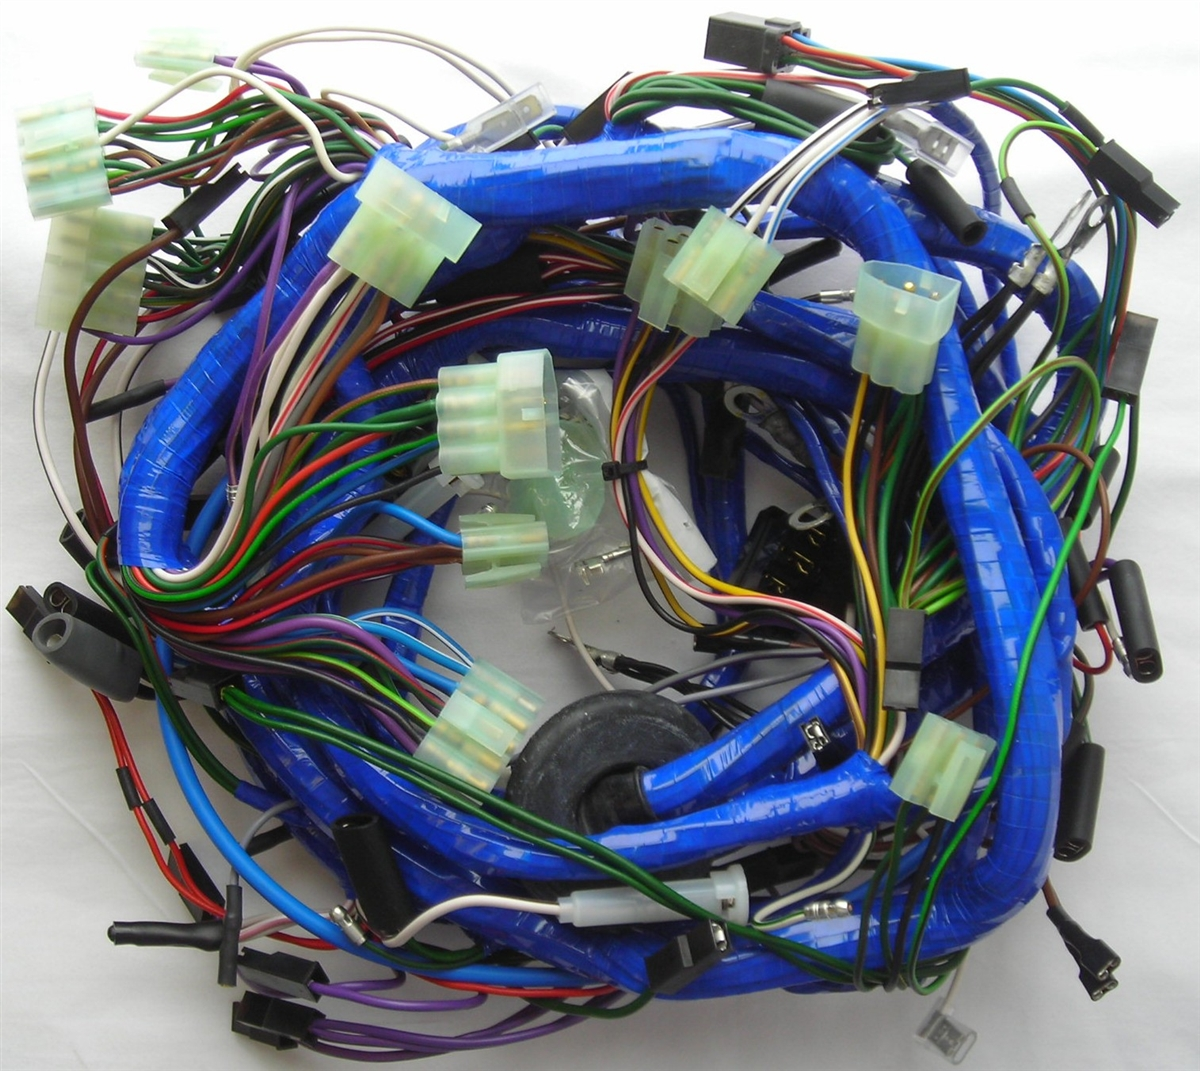 small resolution of mgb 1976 78 main wiring harness 519 rh britishwiring com 2000 chevrolet blazer wiring harness 1974